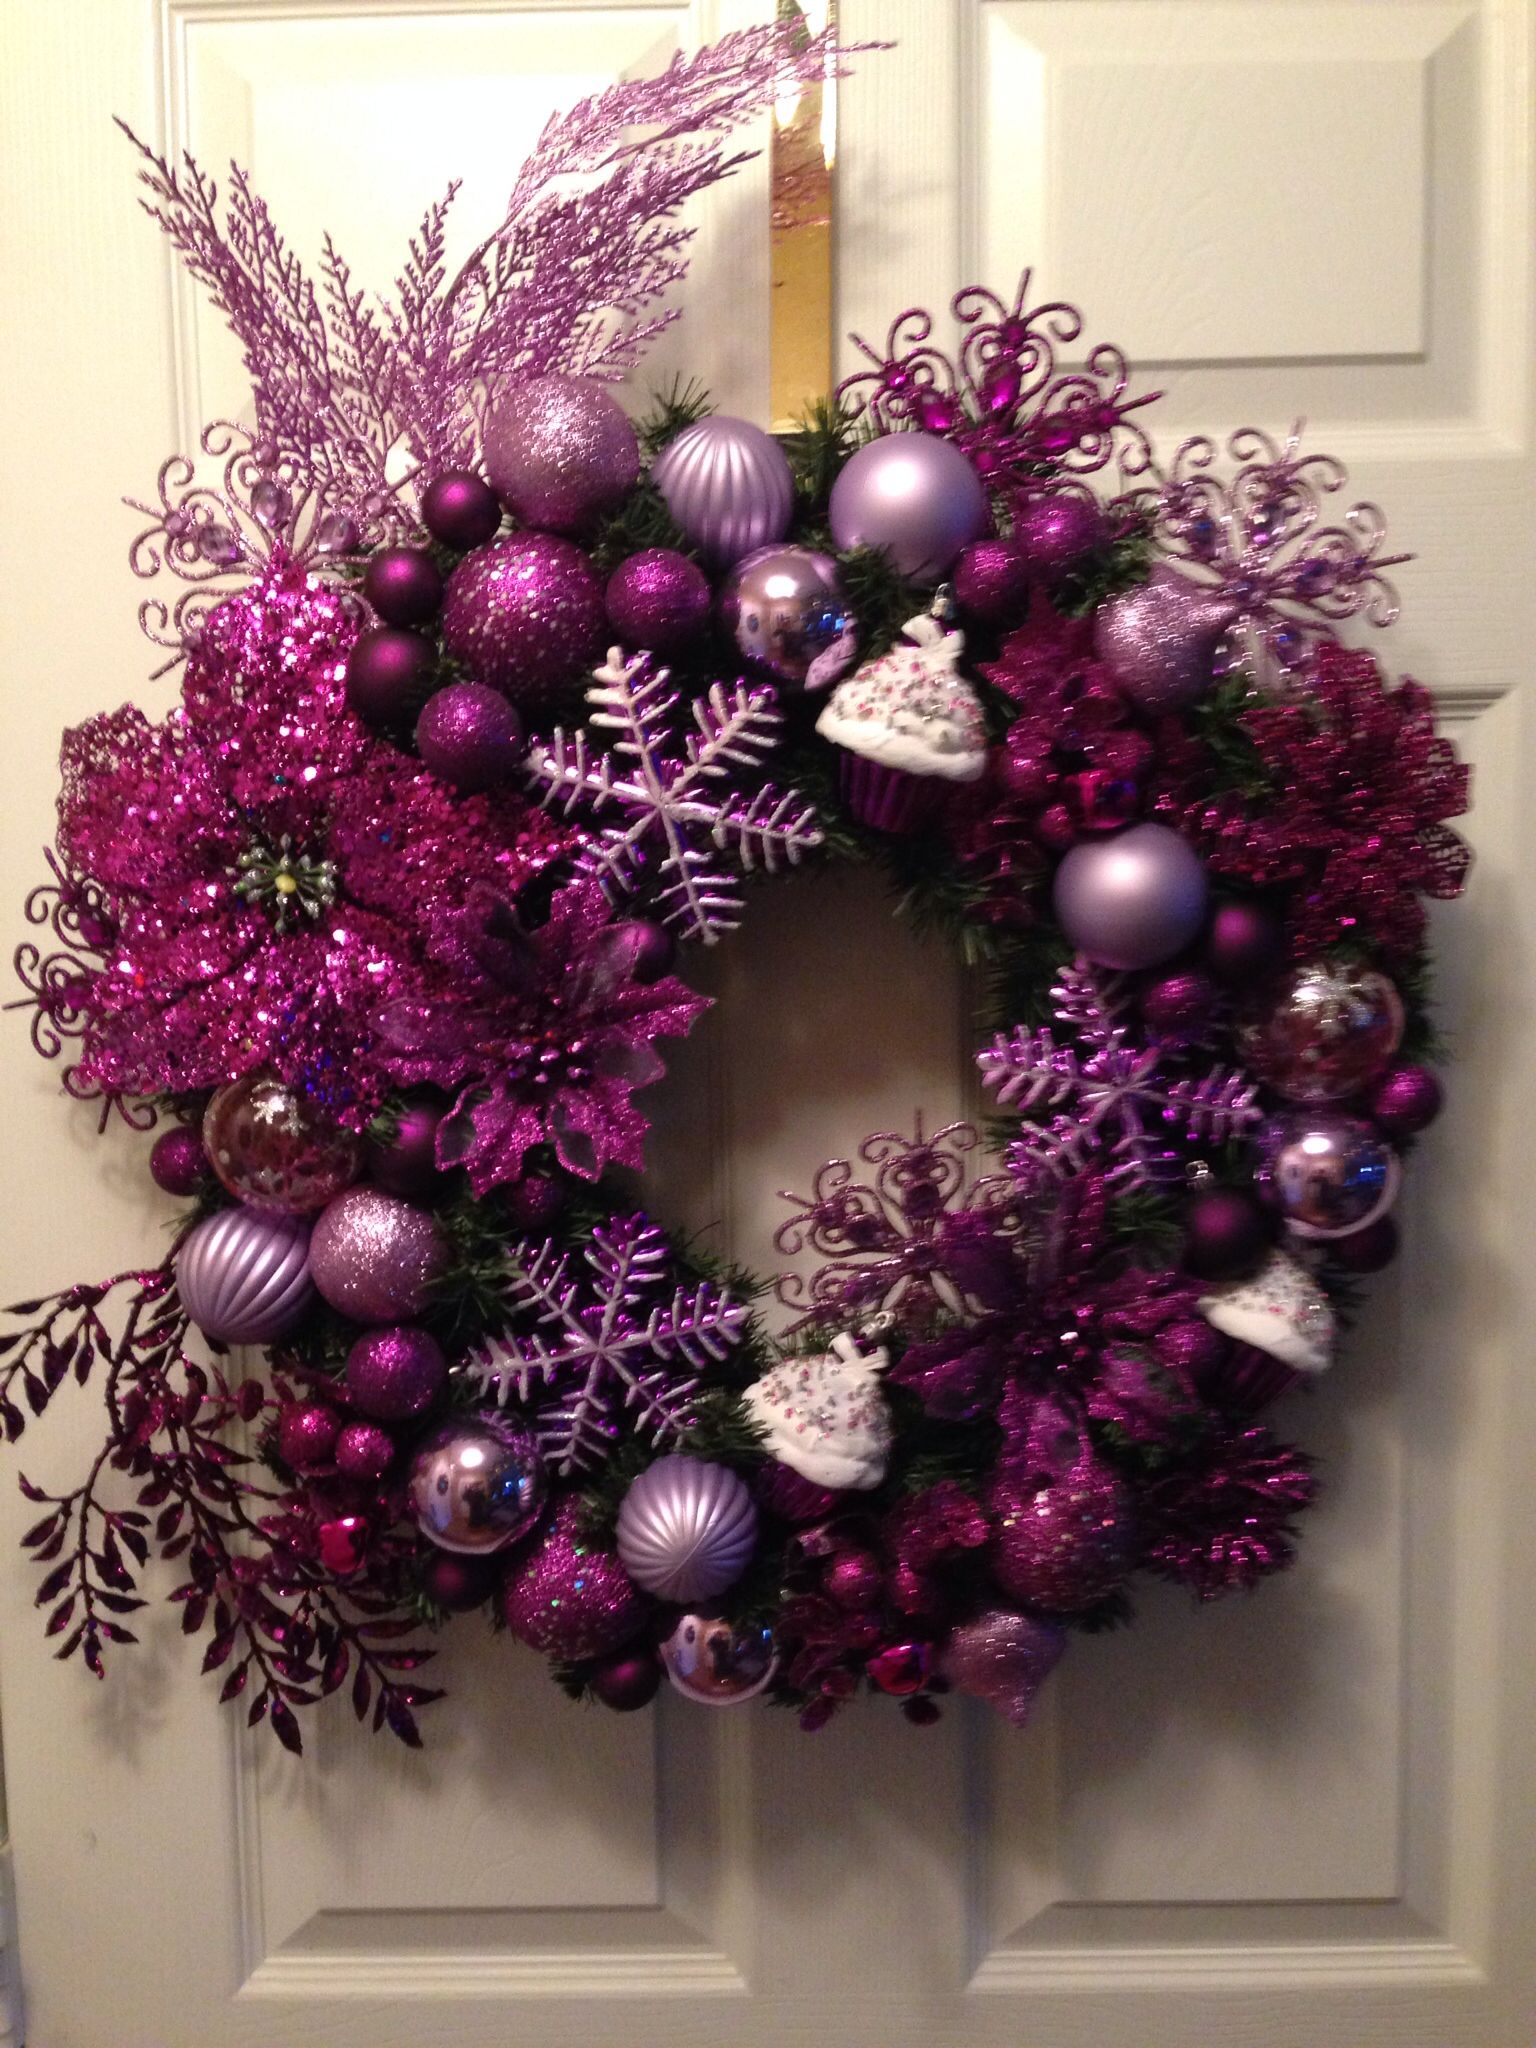 made this purple lavender snowflake n cupcakes christmas wreath 2dayall decorations from ww n the purple poinsettia is from family dollarthis is for